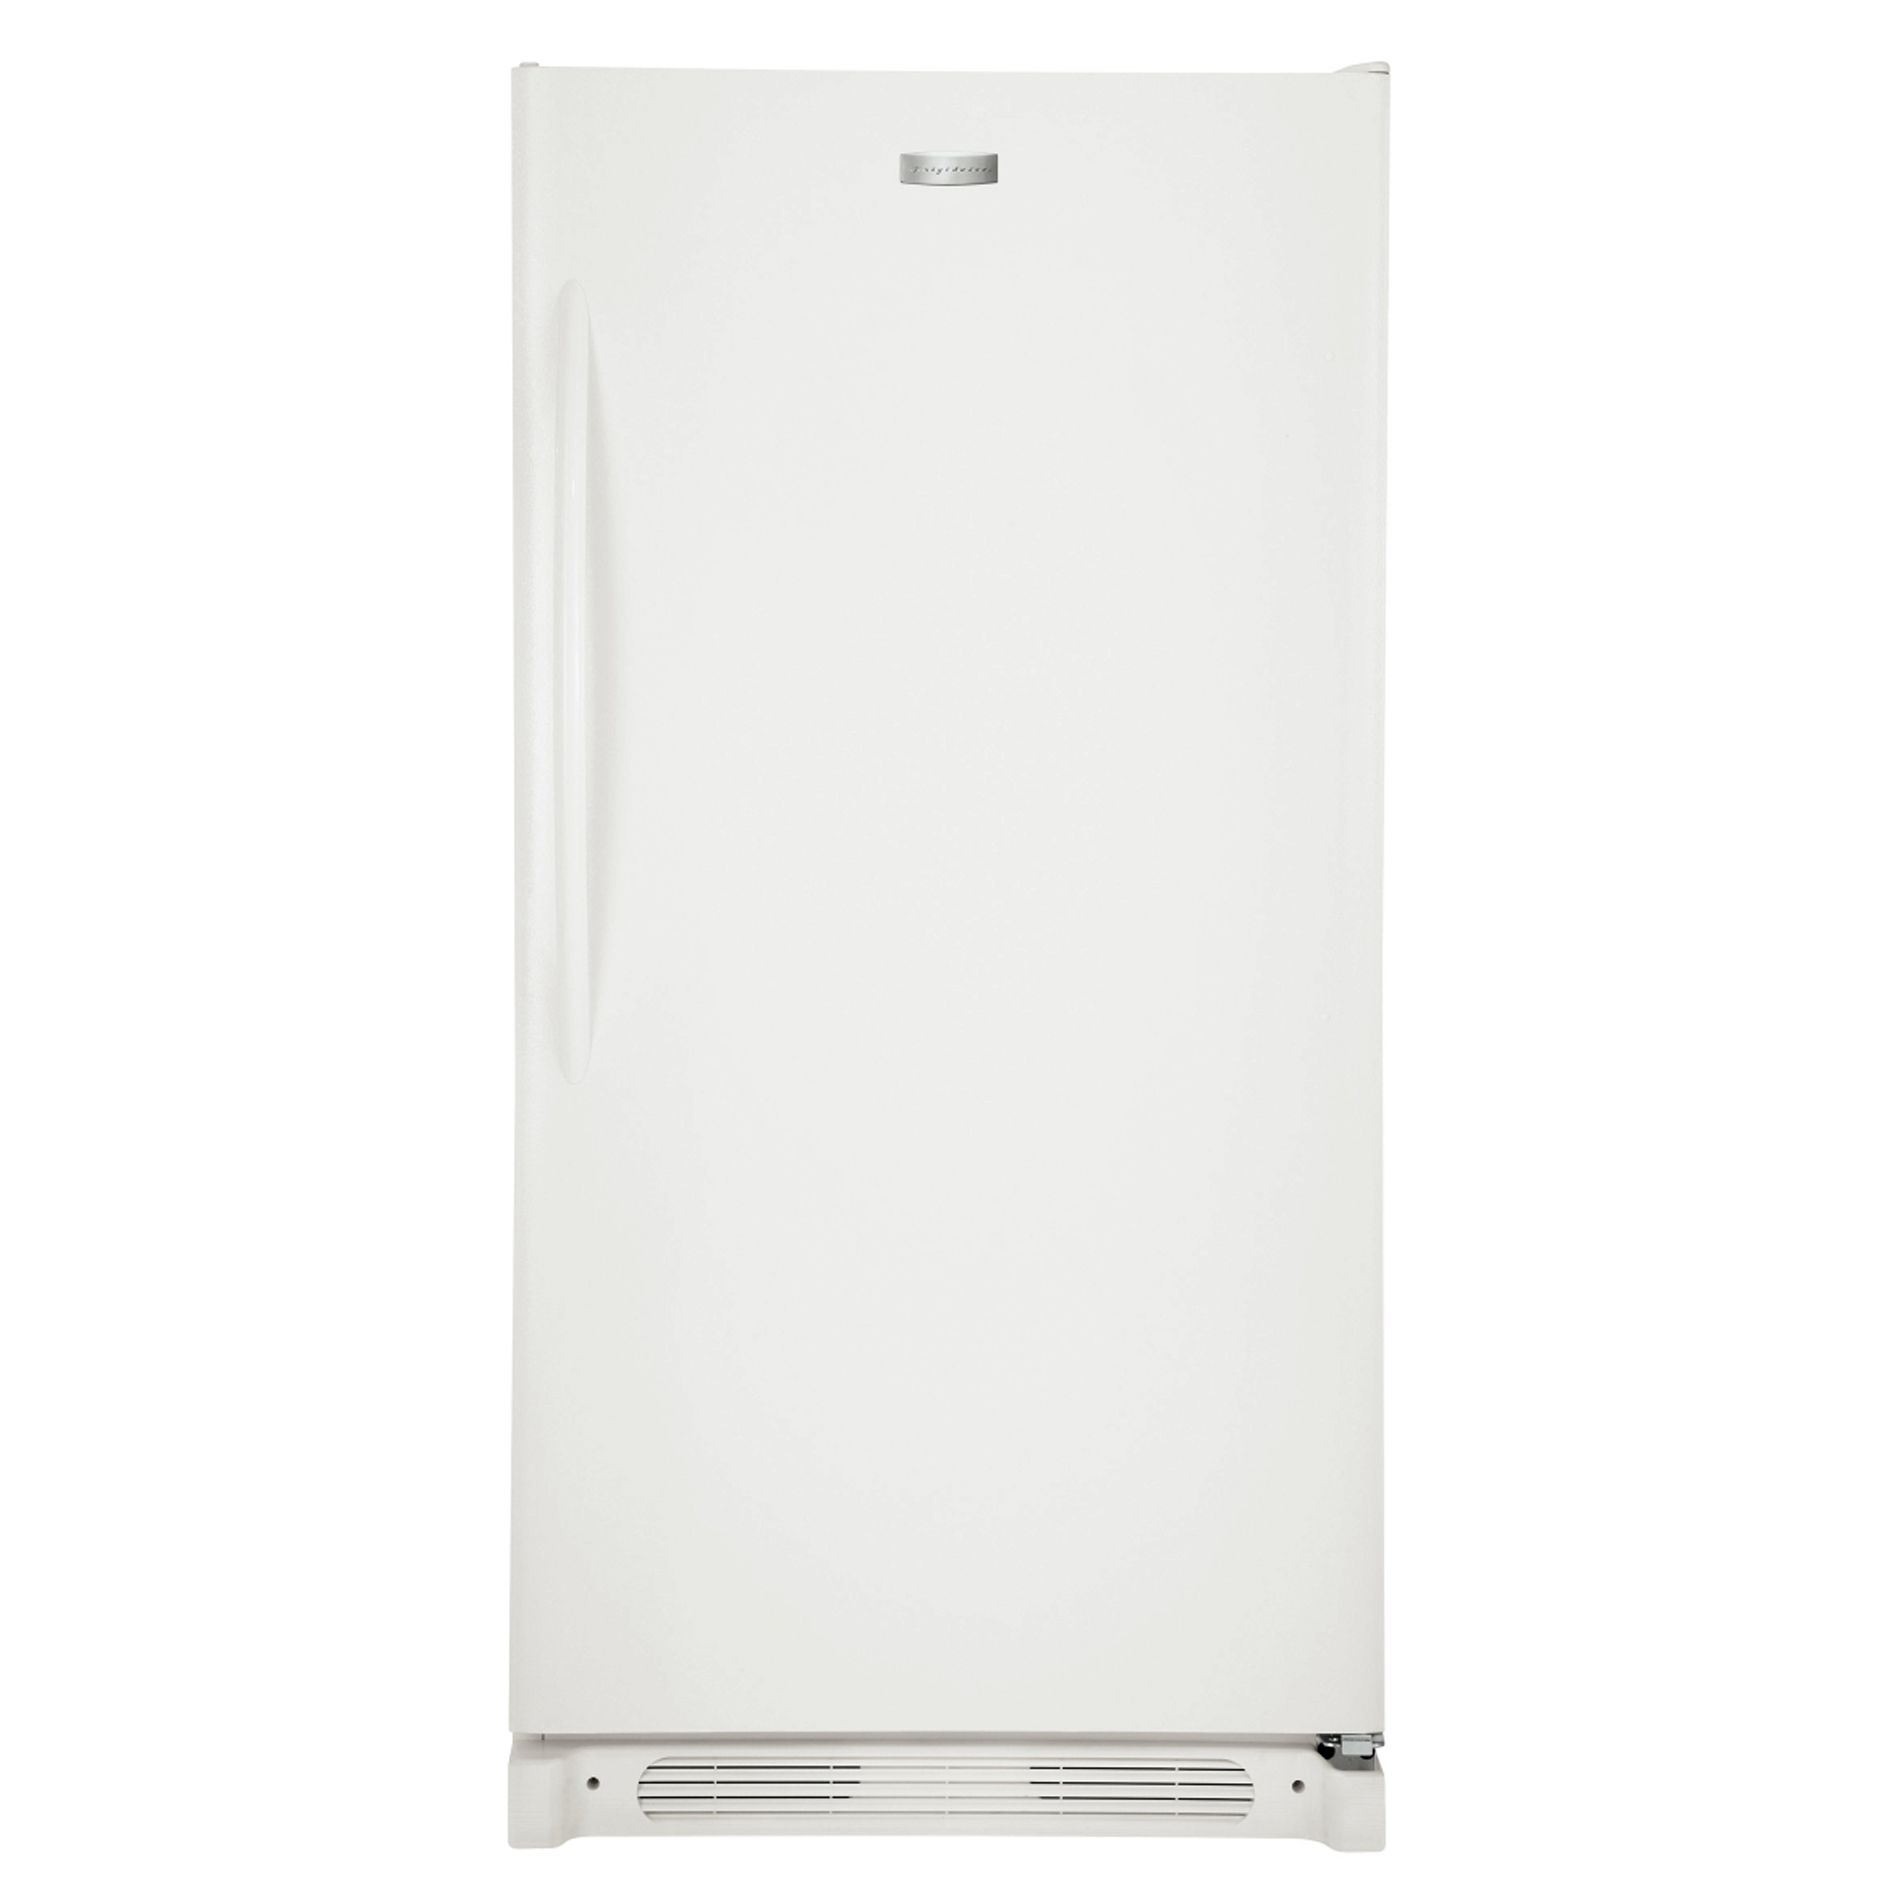 16.7 cu. ft. Upright Freezer Convertible to All Refrigerator